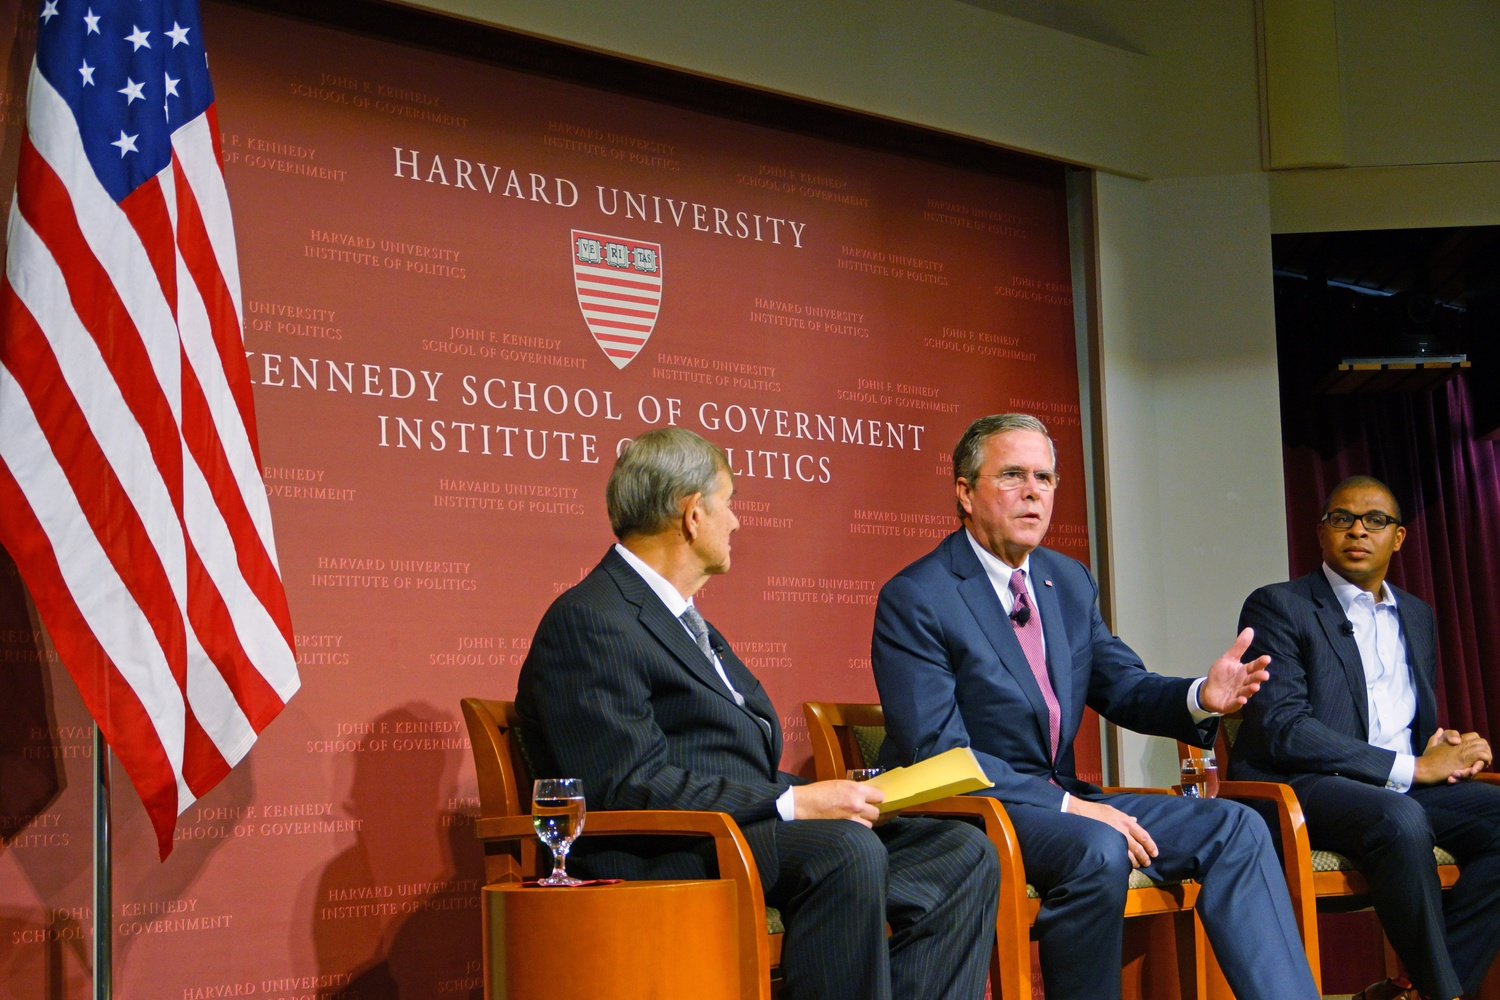 Former presidential nominee and governor of Florida Jeb Bush discusses education with Economics professor Roland G. Fryer and Government professor Paul E. Peterson at the John F. Kennedy, Jr. Forum.